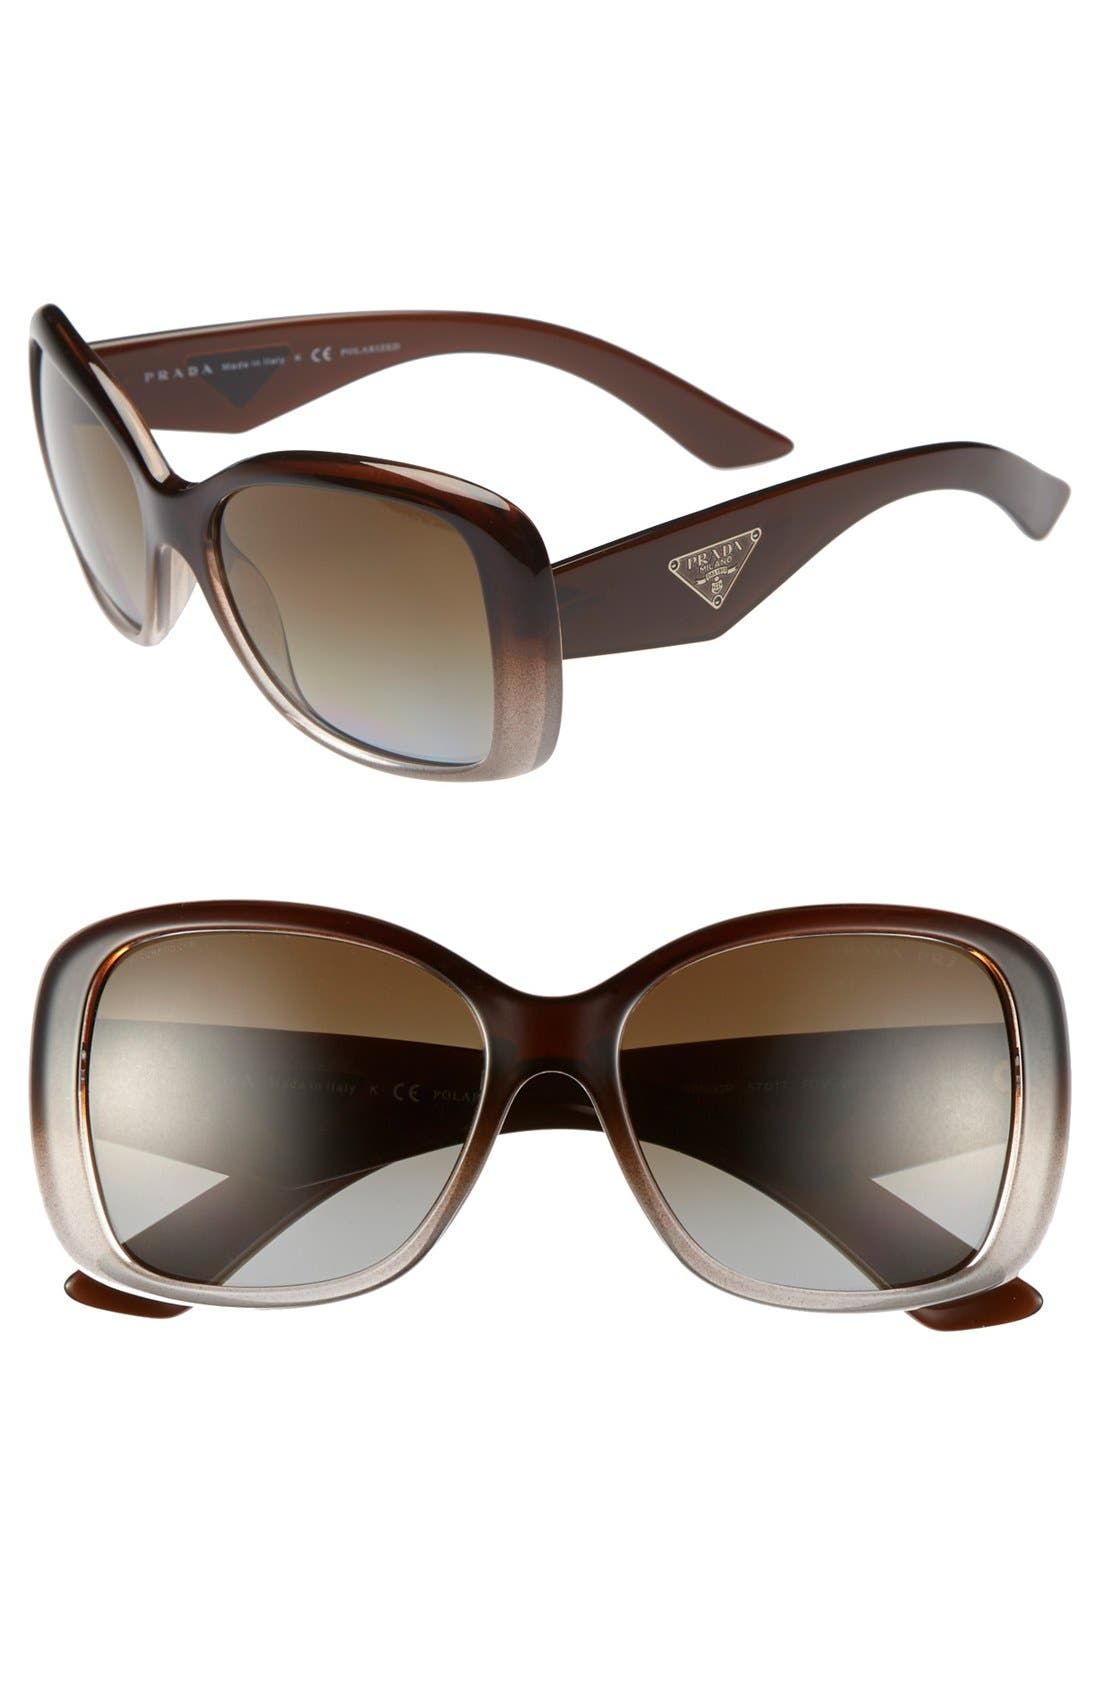 Alternate Image 1 Selected - Prada 'Oversized Glam' 57mm Polarized Sunglasses